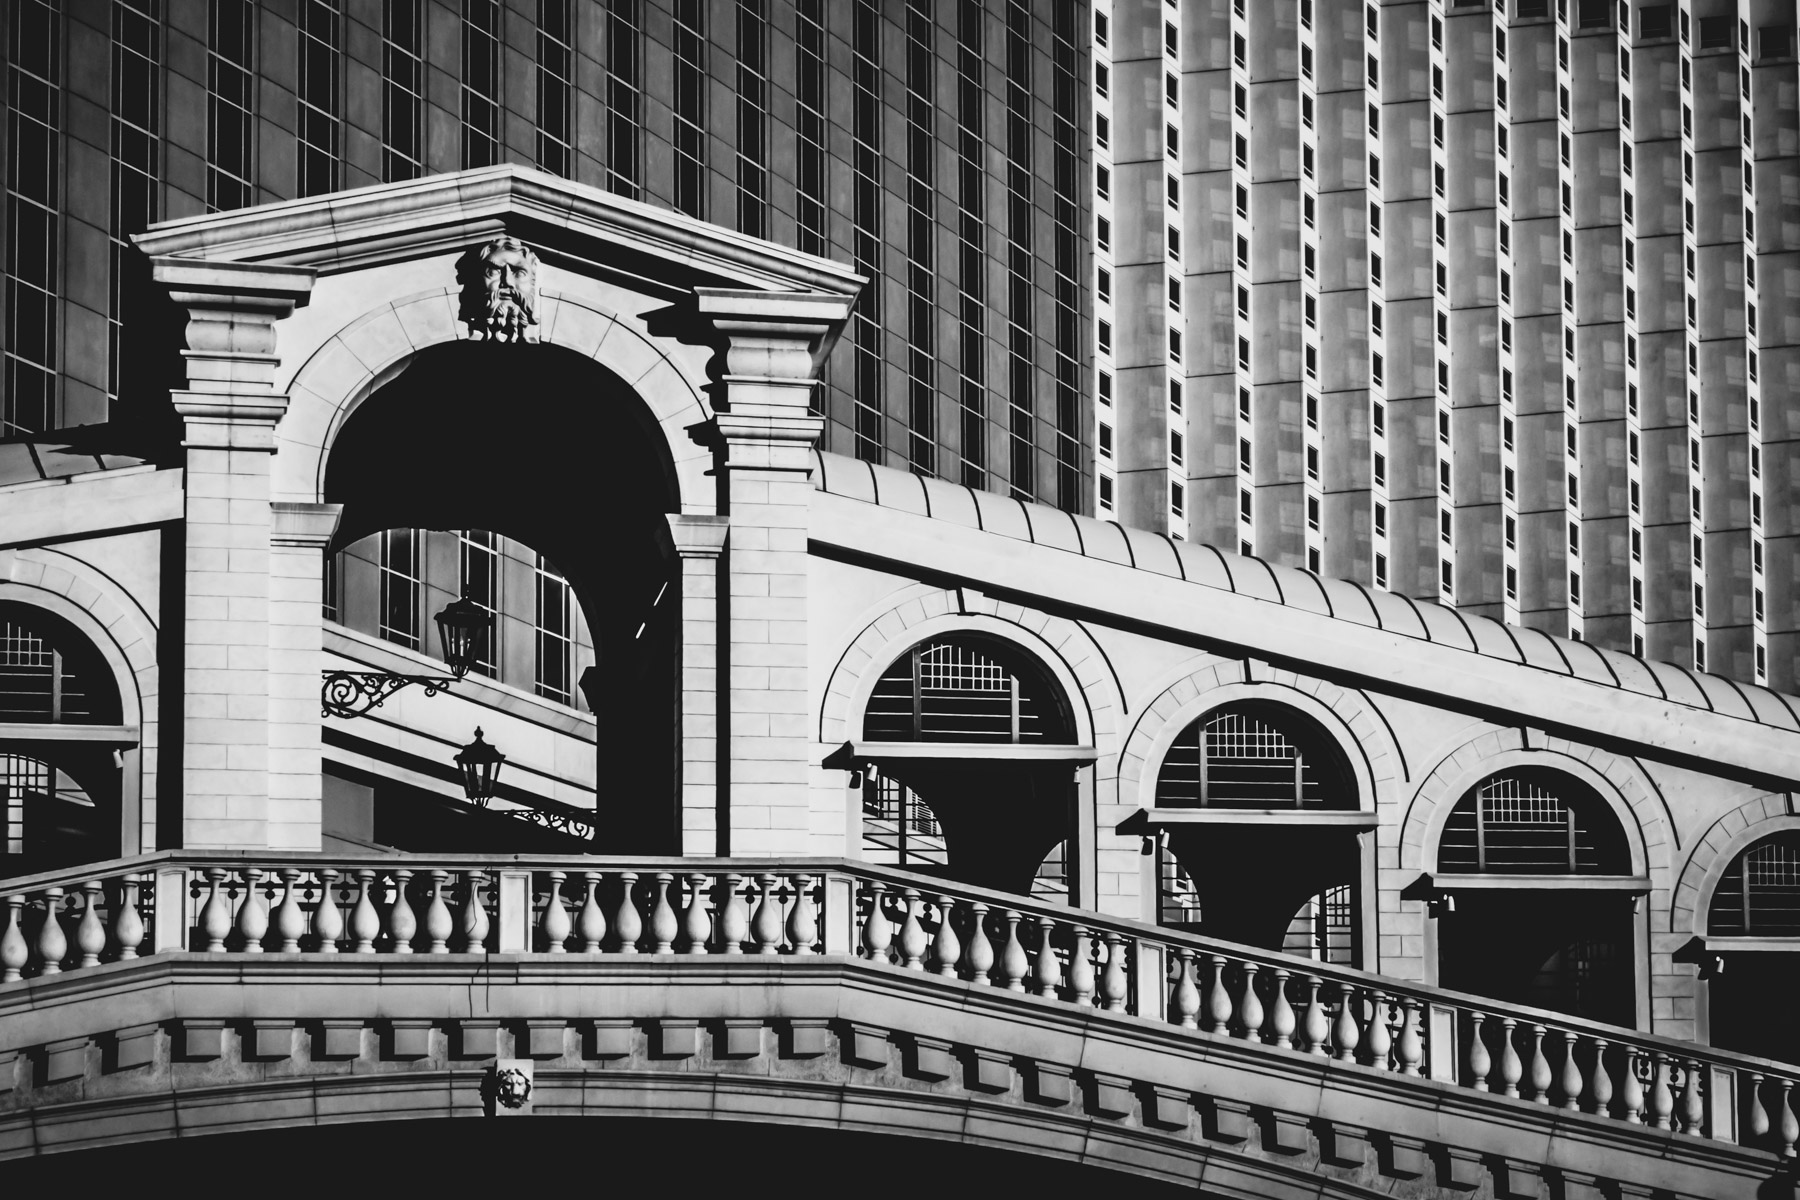 In Las Vegas, the Venetian's re-creation of Venice's Rialto Bridge.